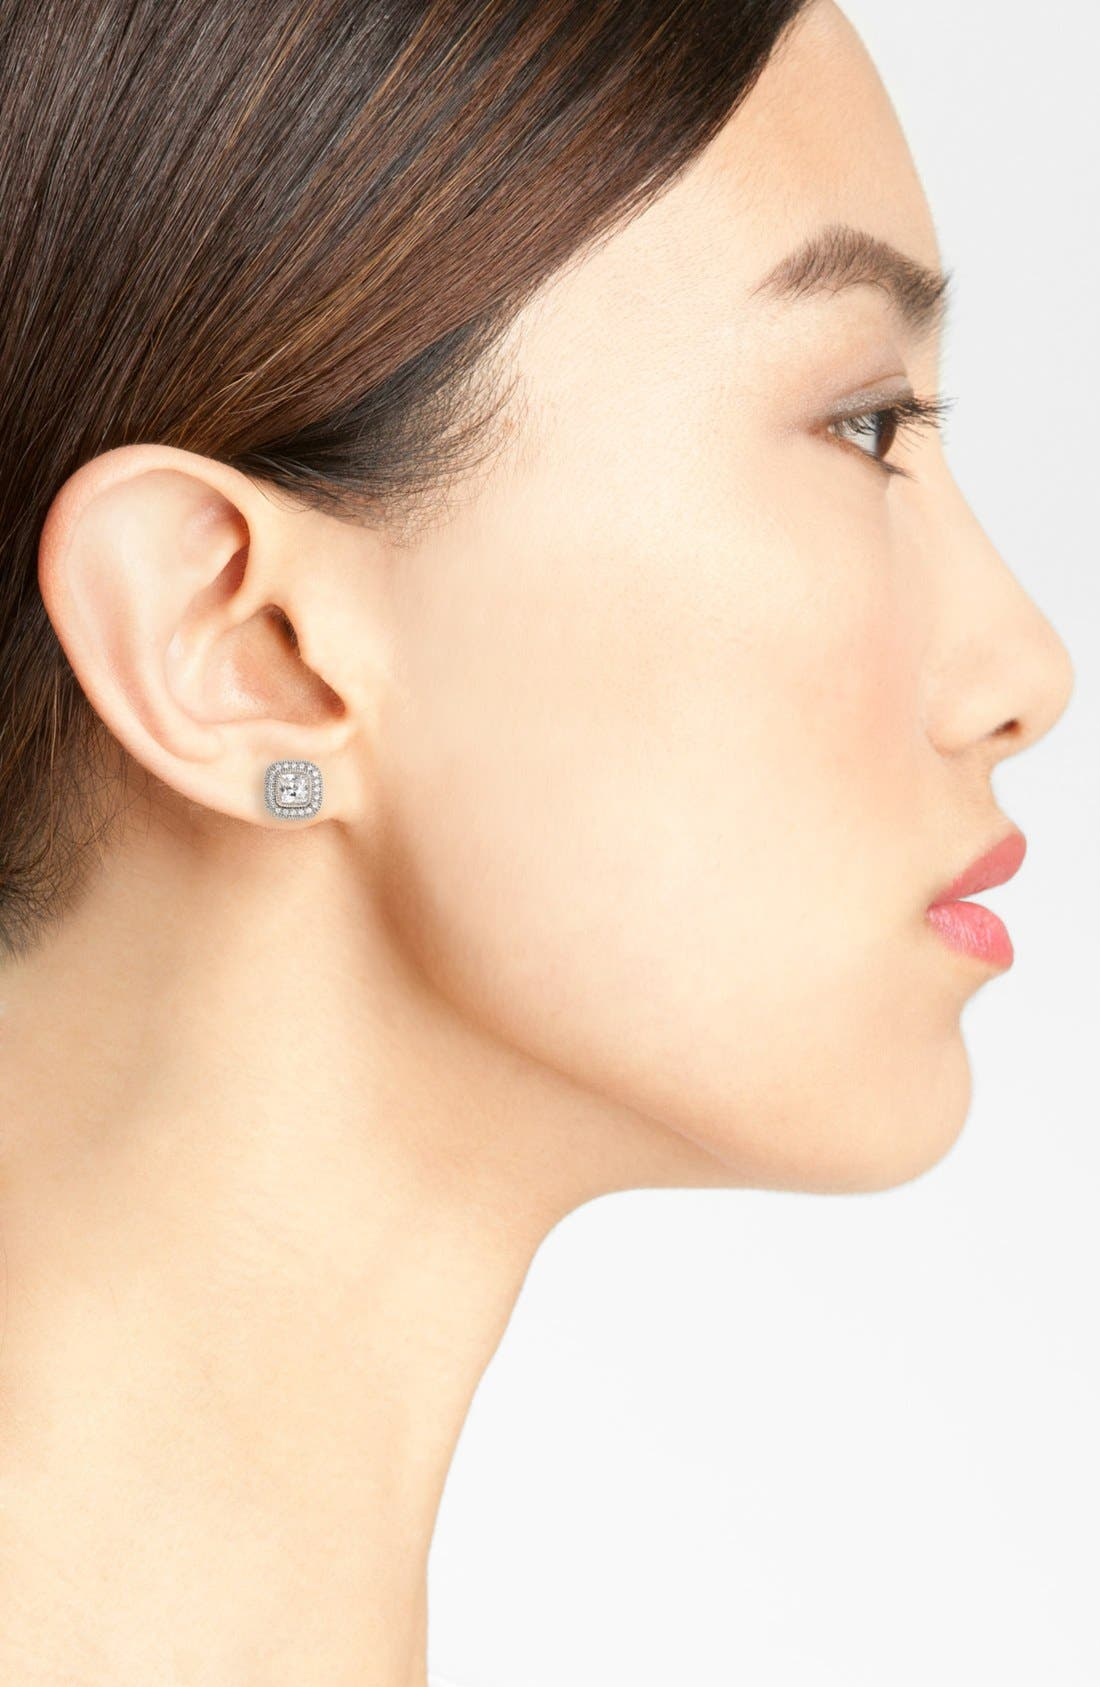 'Lassaire' Square Stud Earrings,                             Alternate thumbnail 2, color,                             Silver/ Clear